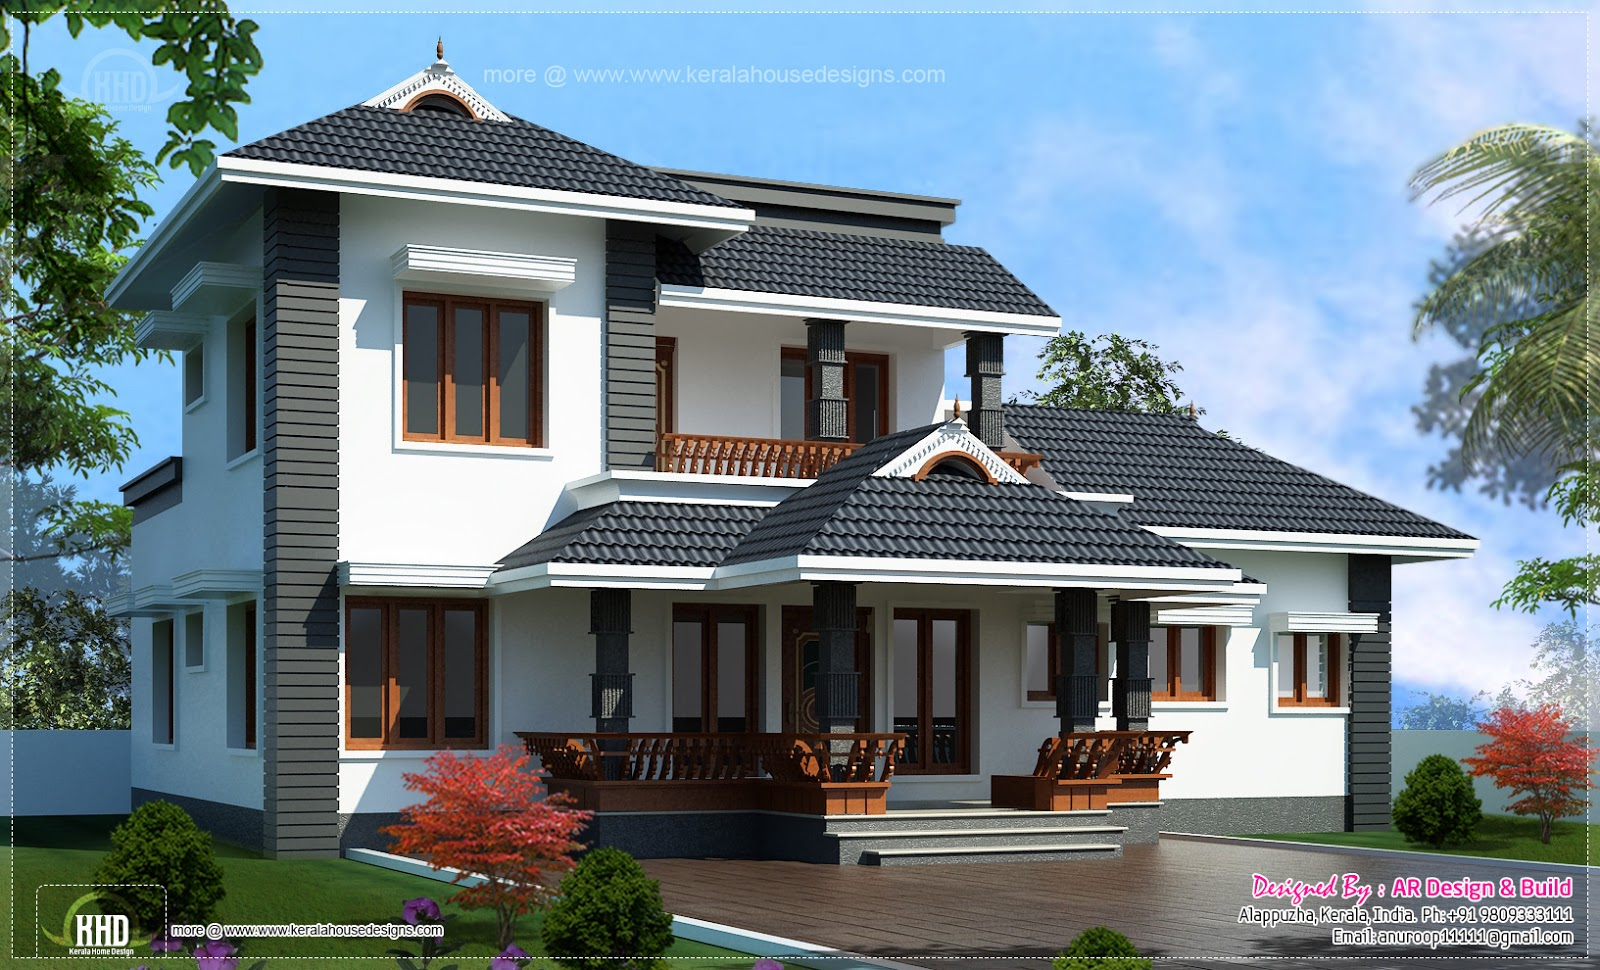 2000 4 bedroom sloping roof residence kerala for Sloped roof house plans in india